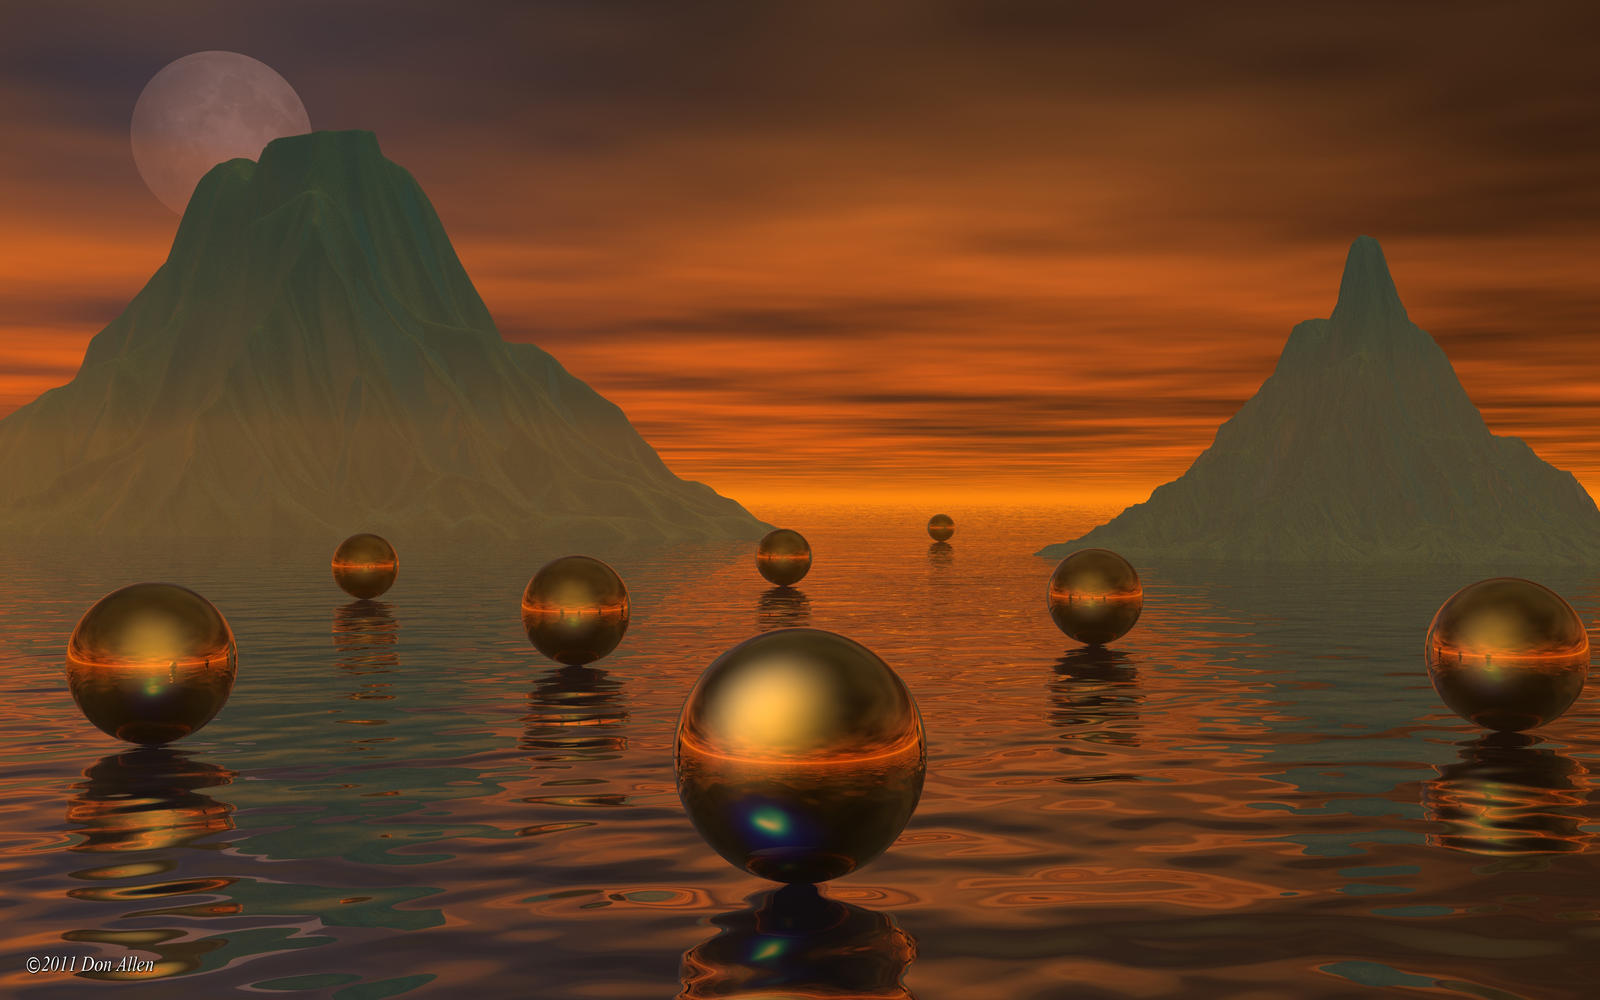 Invasion of the Spheres by Don64738